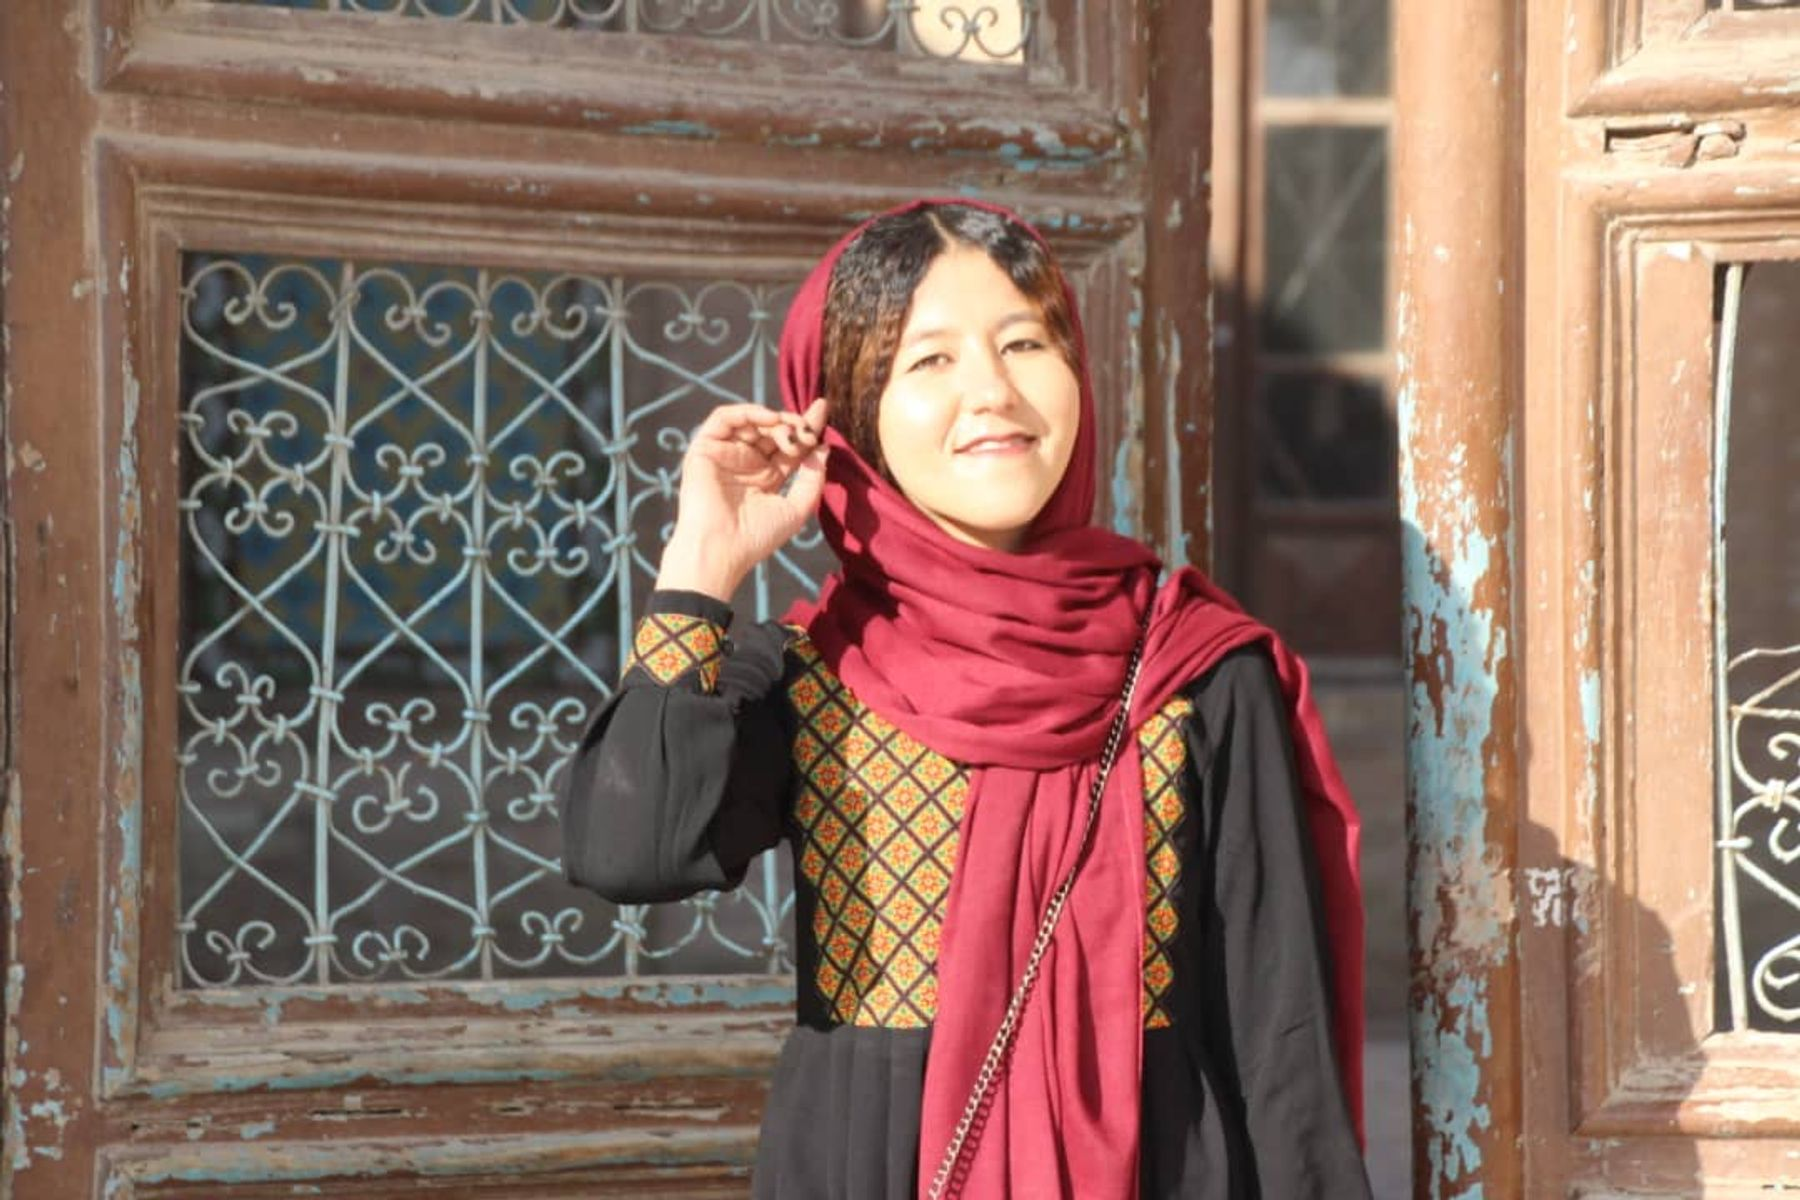 Fatima, Afghanistan's first ever female tour guide